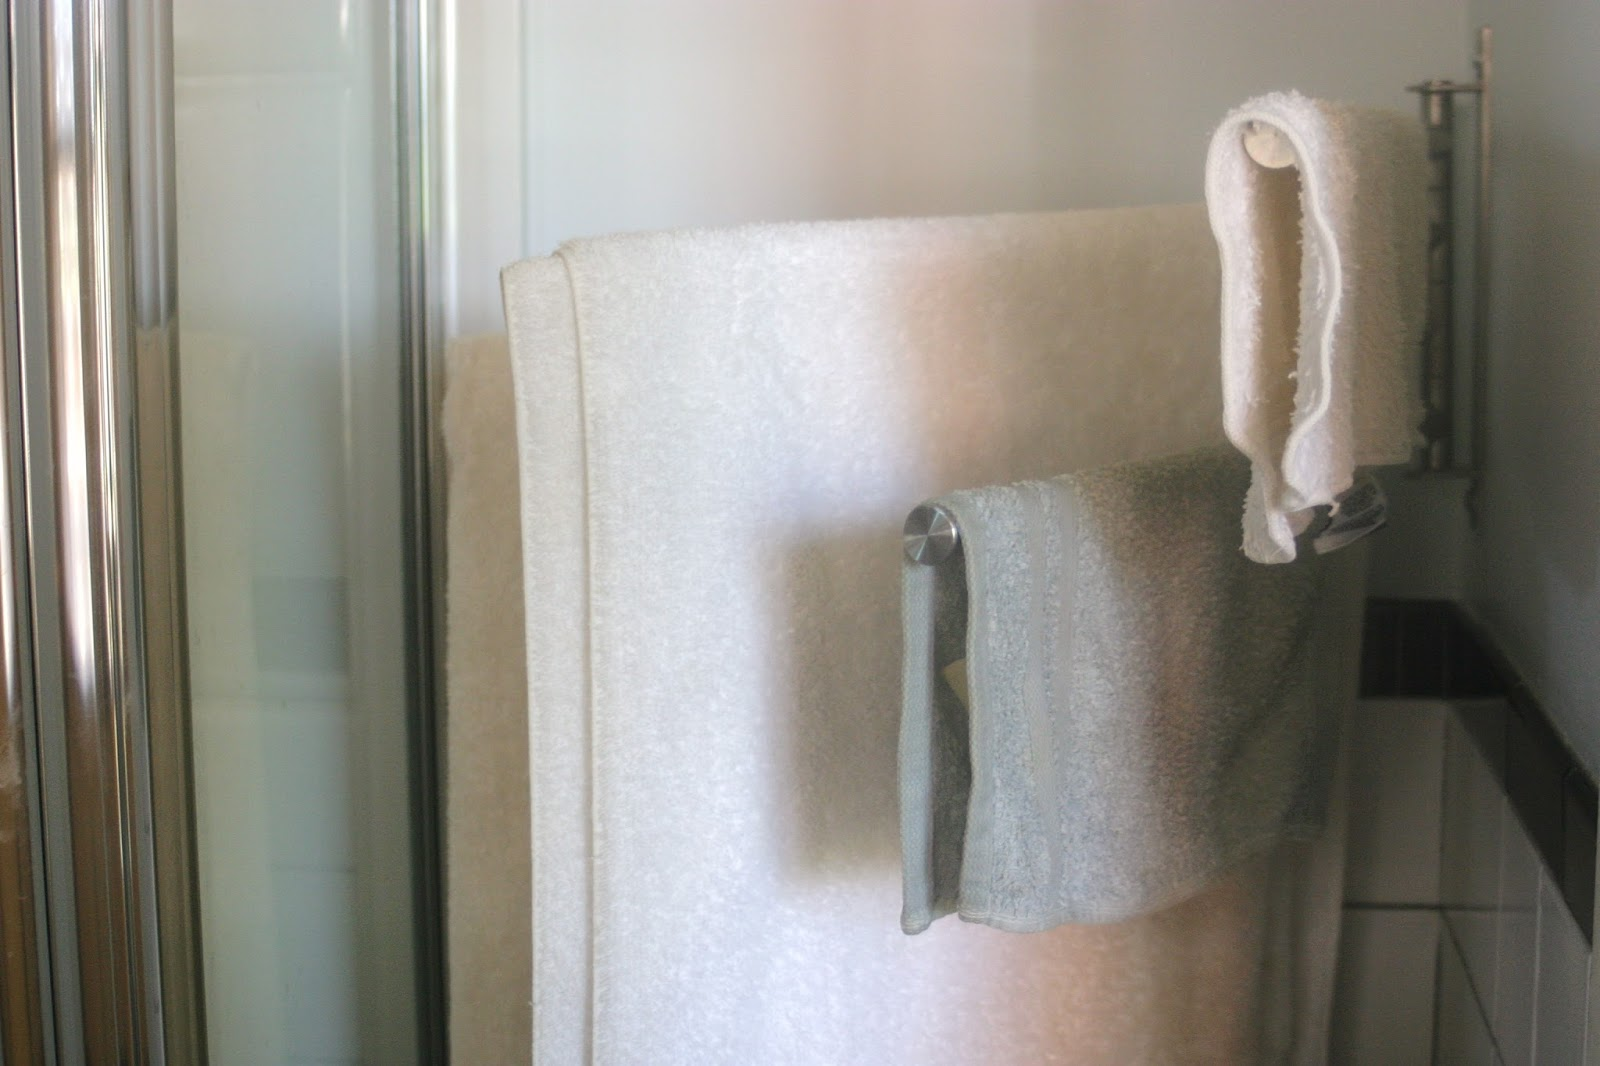 Thrift at Home: A Bathroom Mirror Cleaning Trick